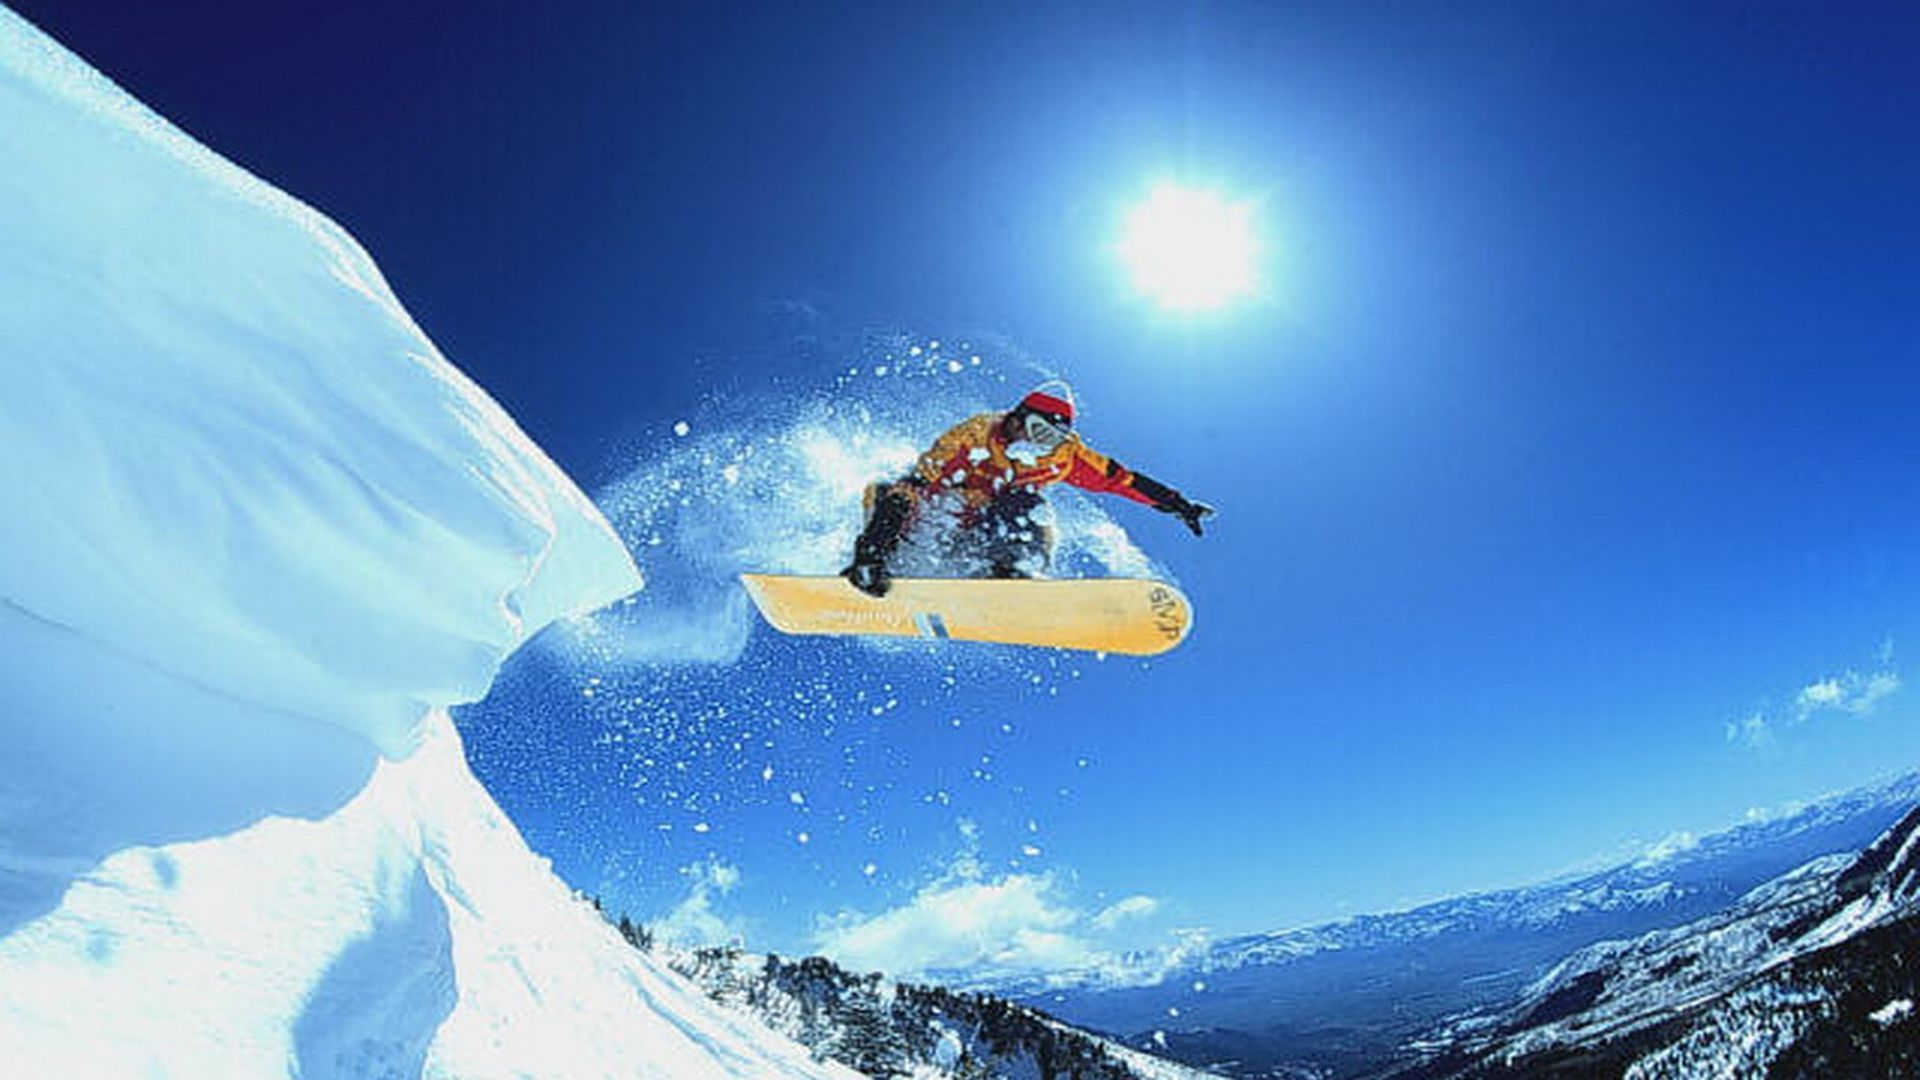 Hd Snowboarding Mountain Wallpaper High Resolution Free Download Images